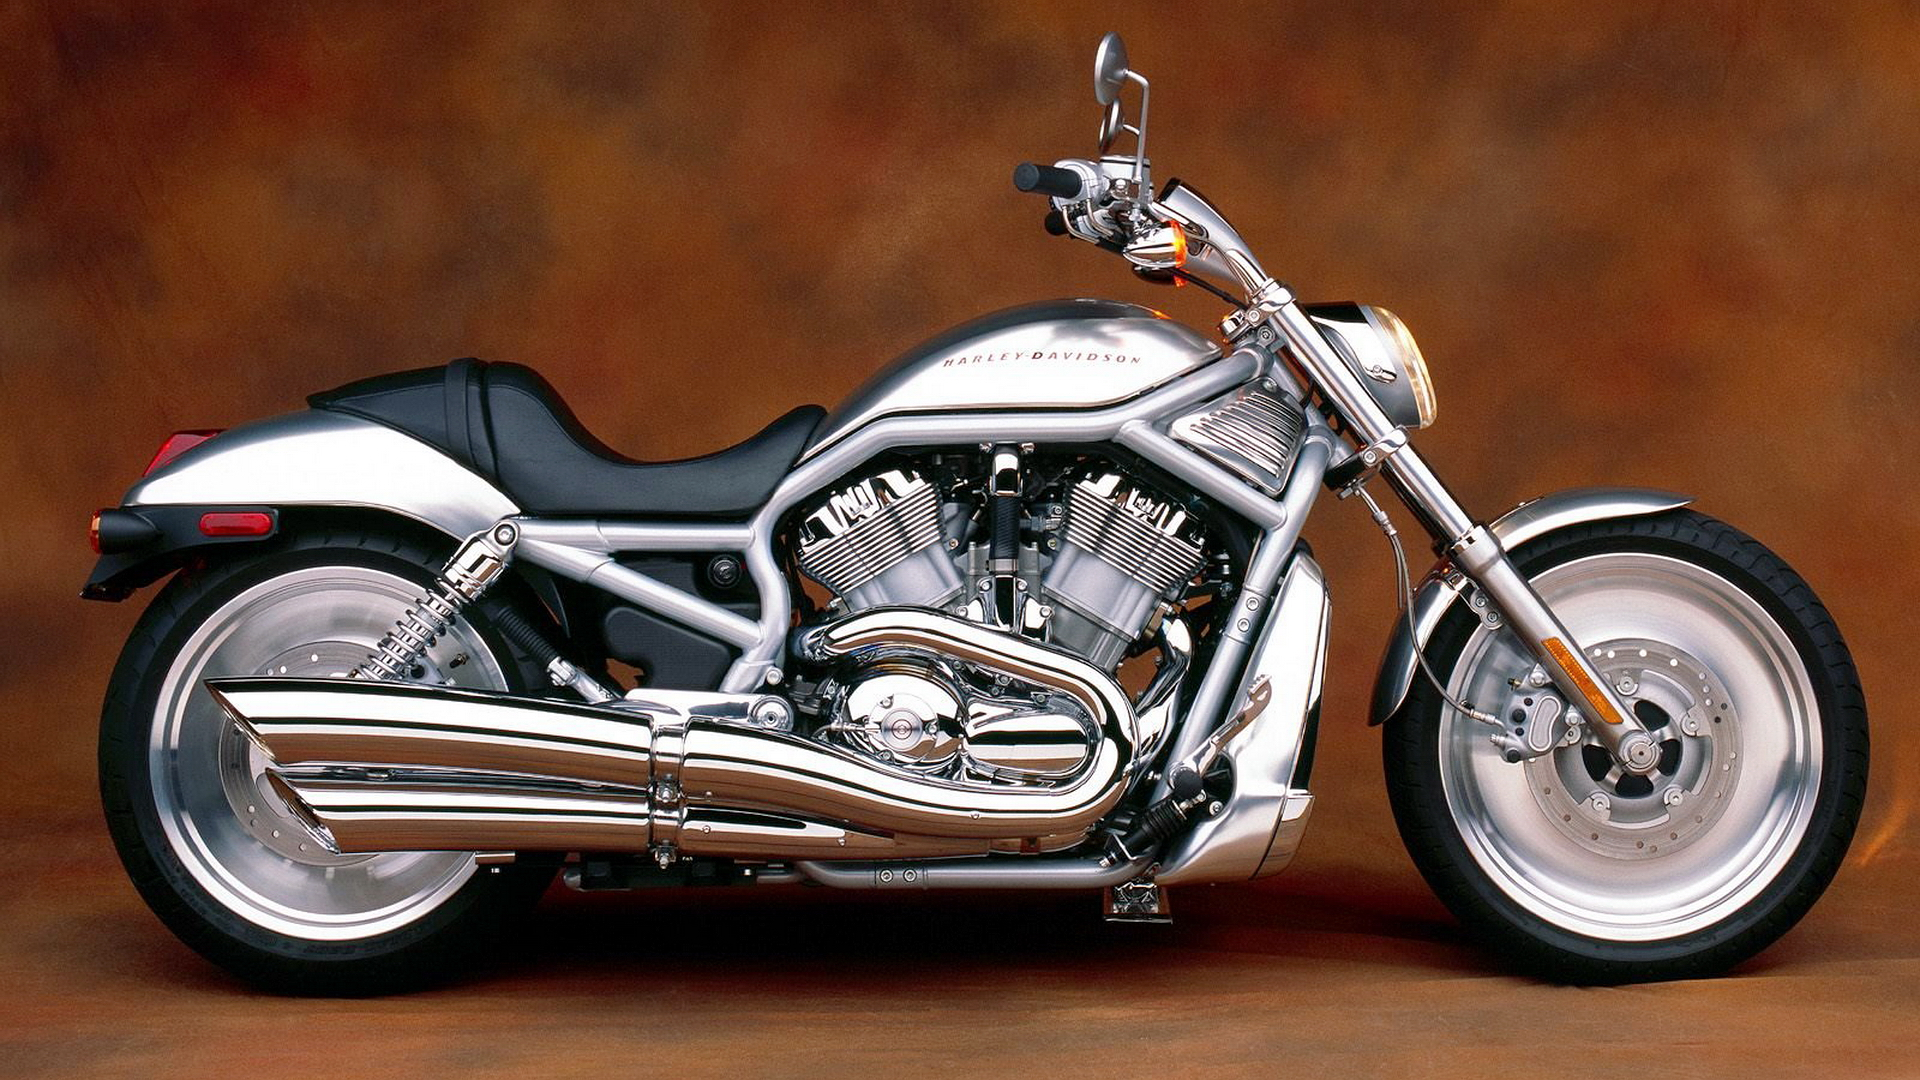 7 Harley Davidson V Rod Hd Wallpapers Backgrounds HD Wallpapers Download free images and photos [musssic.tk]